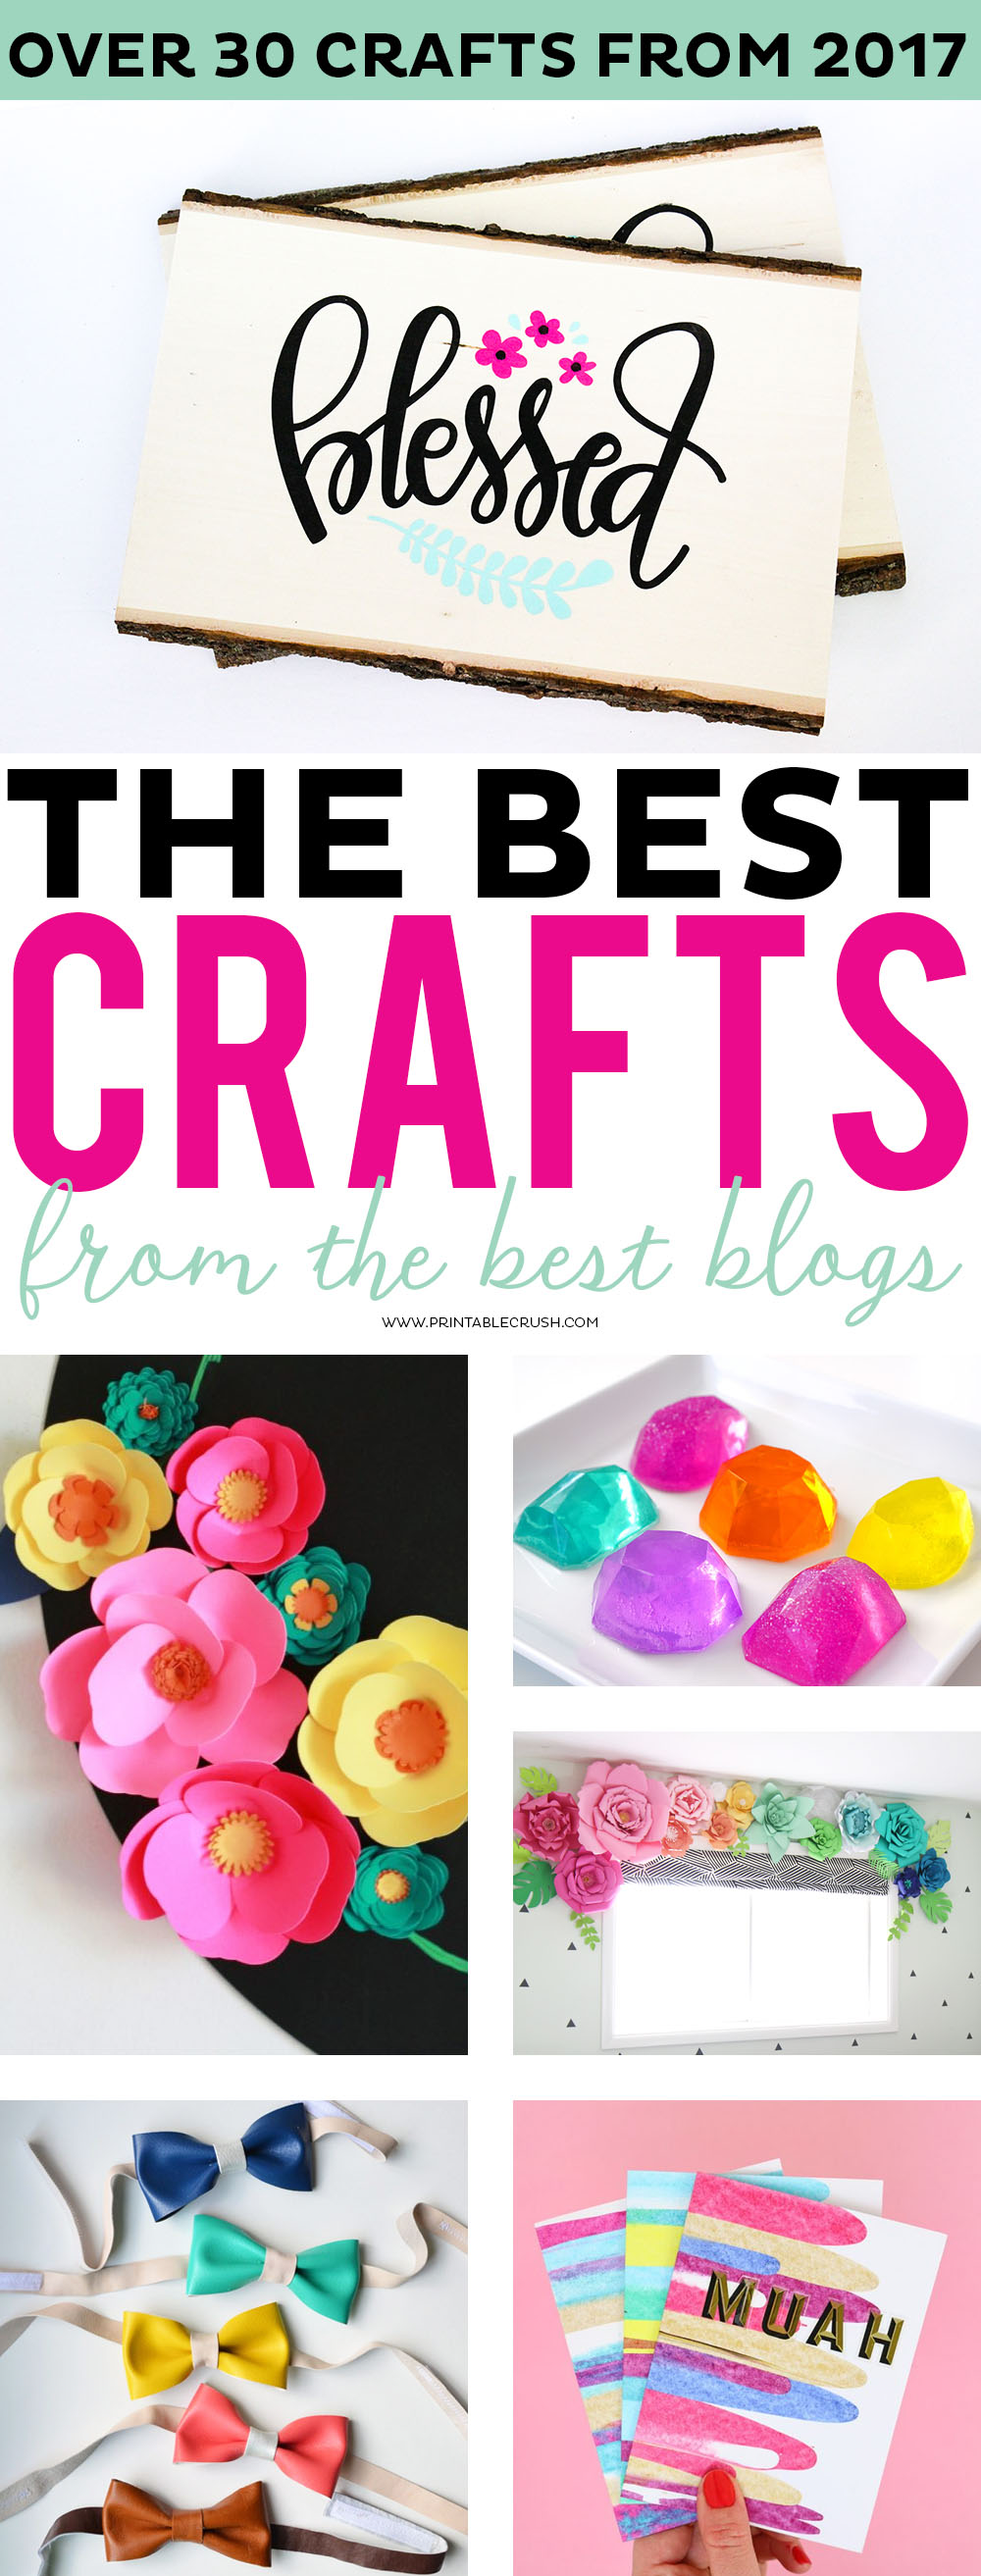 Every year, I do a best of Printable Crush round up...but this year, I've partnered with some of my favorite bloggers to bring you the BEST Crafts of 2017!